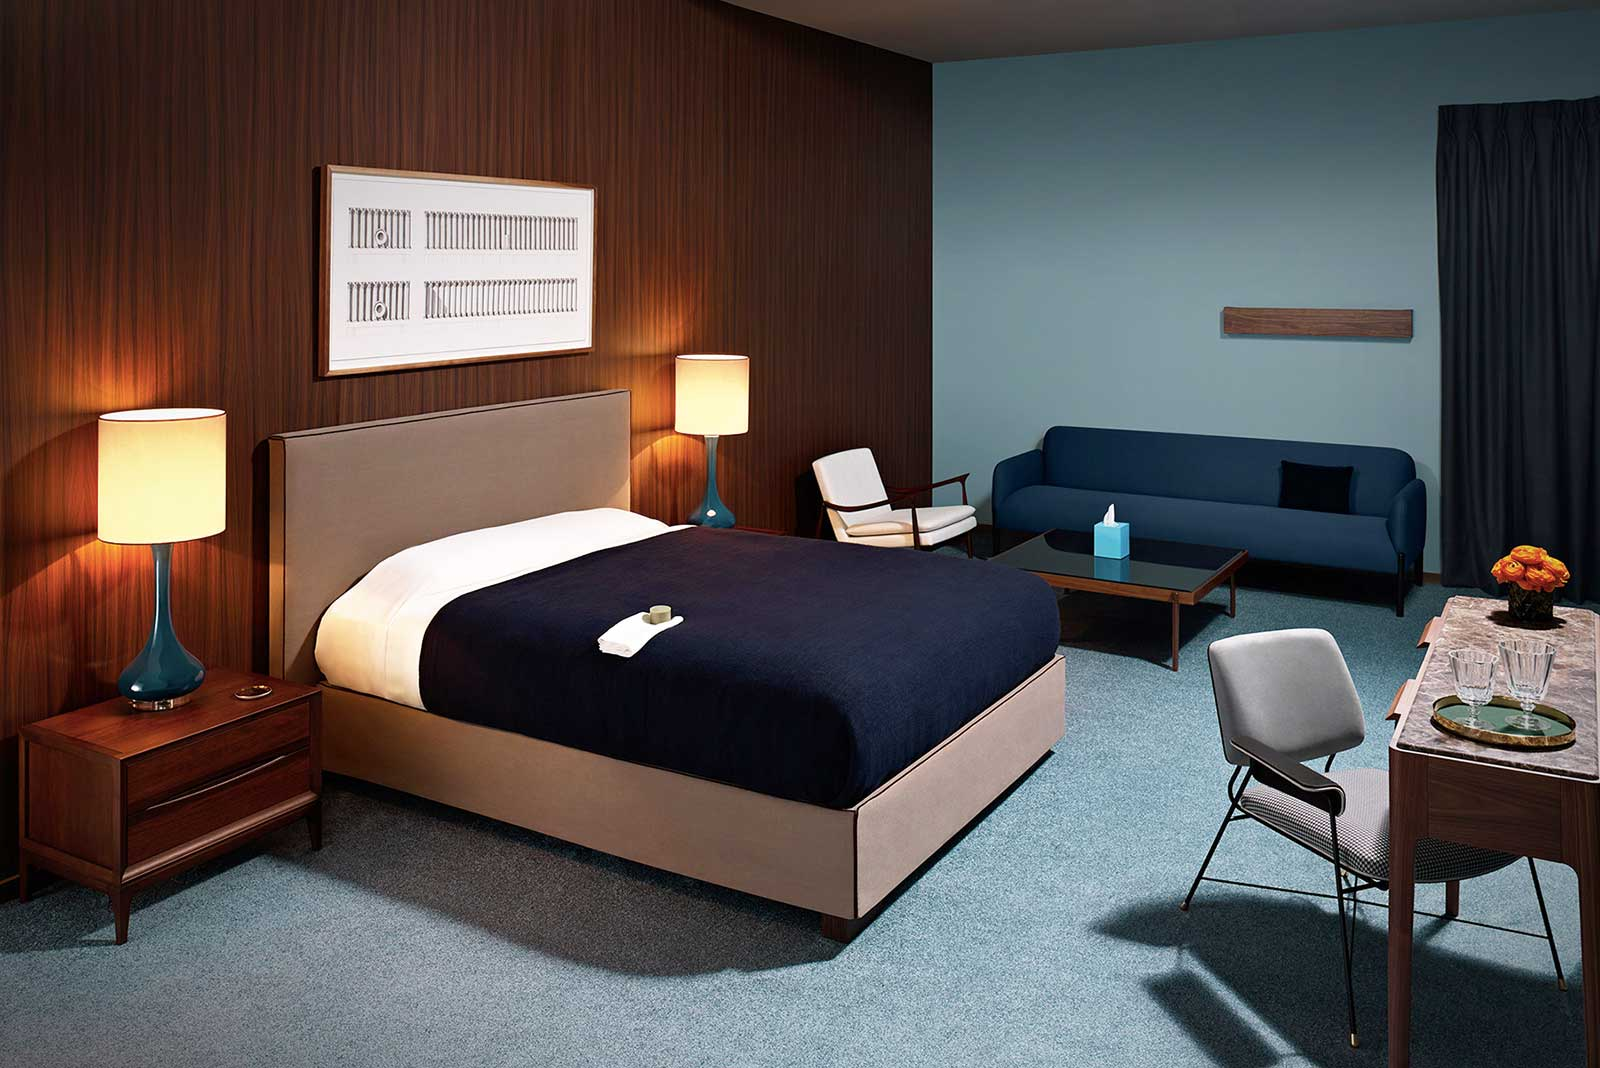 Wallpaper_motel_story_1_eclectic_trends